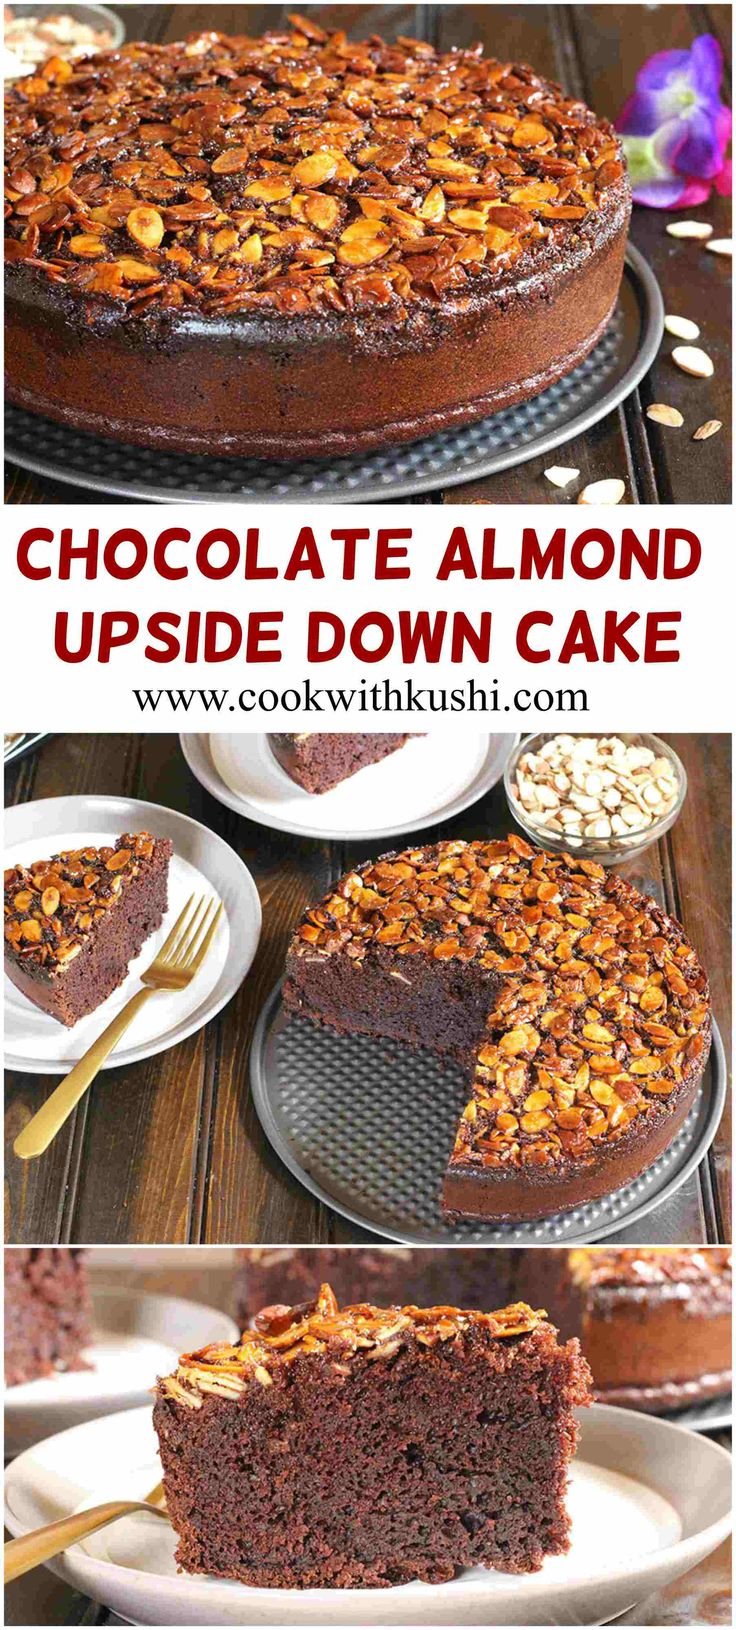 Chocolate Almond Upside Down Cake is super soft and moist, delicious melt in mouth cake with caramelized topping in every single bite making it a perfect treat for this holiday season. #Immaculateholidays #immaculatebaking #buzzfeedfood #feedfeed @bhg  @immaculatebakes #holiday #christmas #thanksgiving #parties #bake #chocolate #sweet #dessert #food #foodie